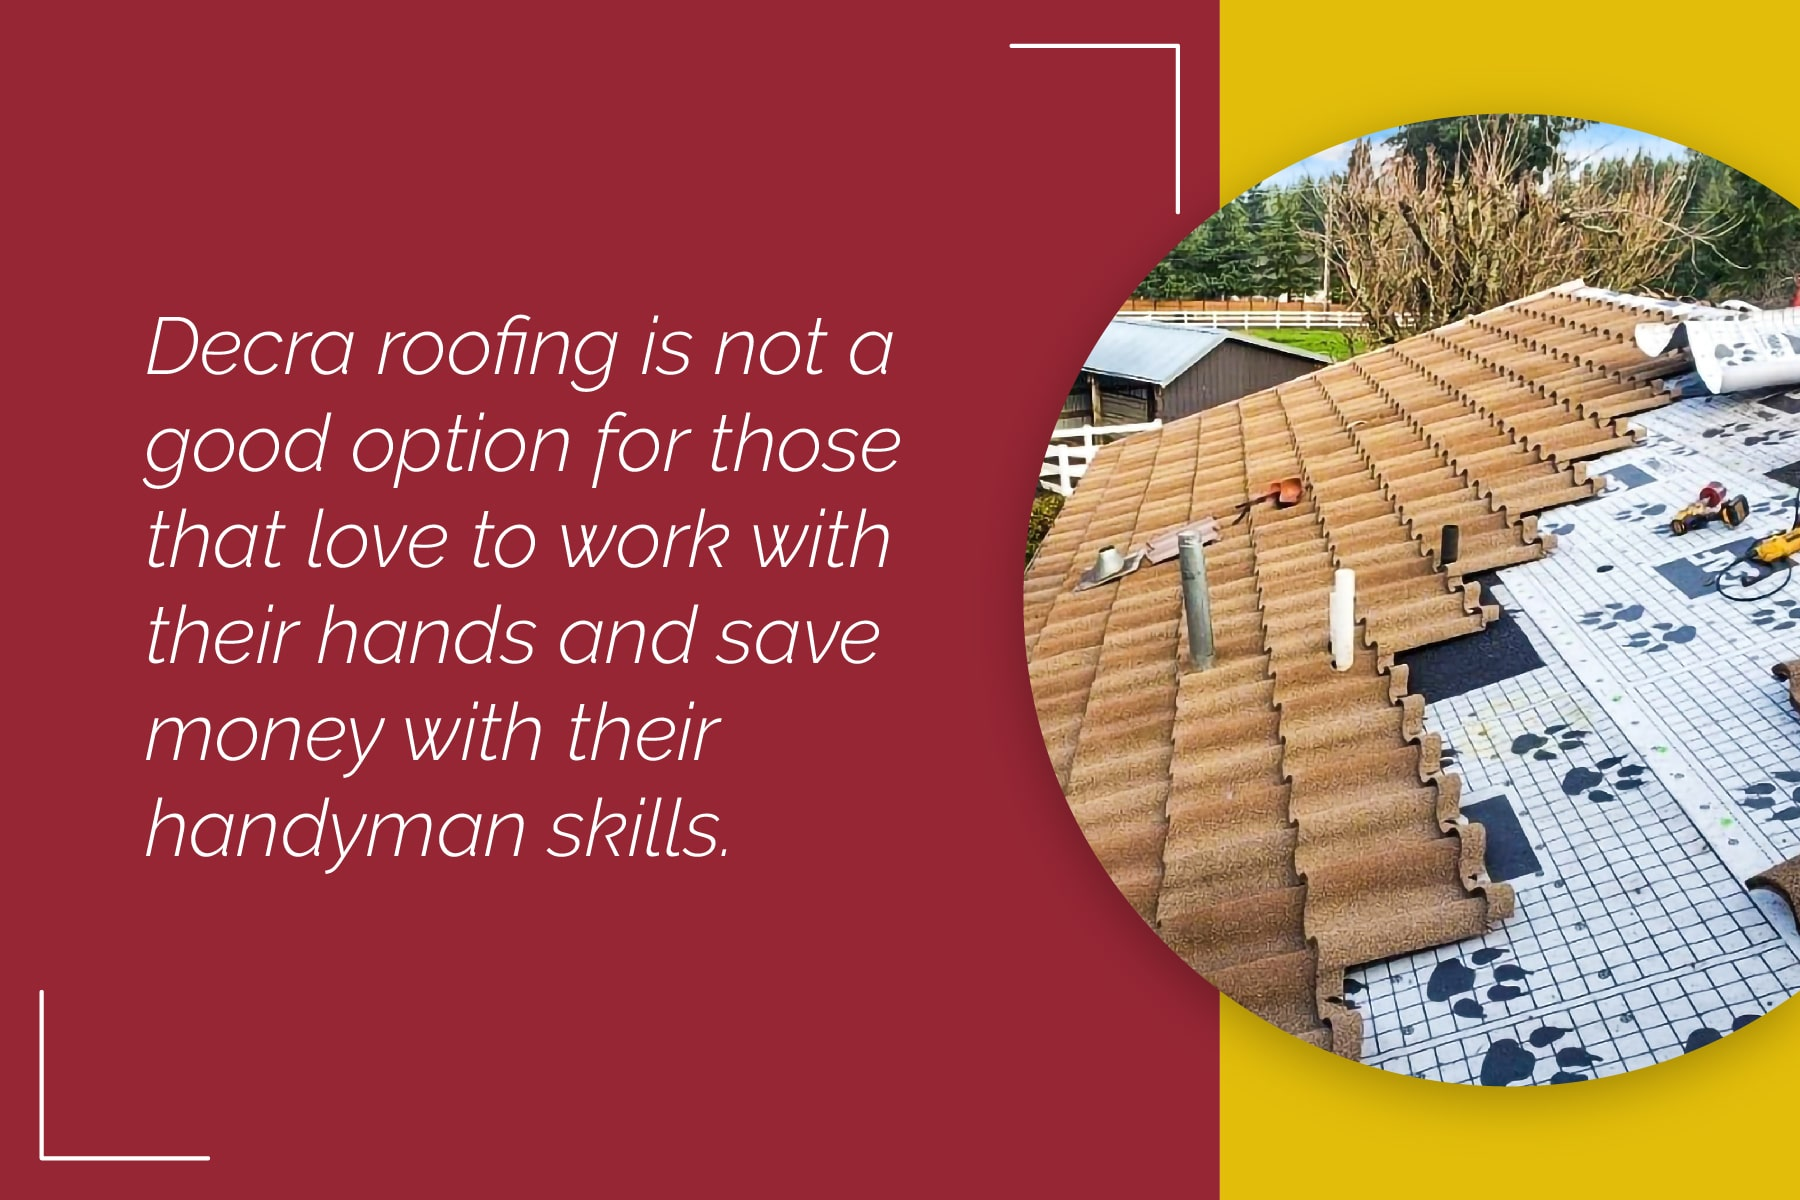 How to install decra metal roofing